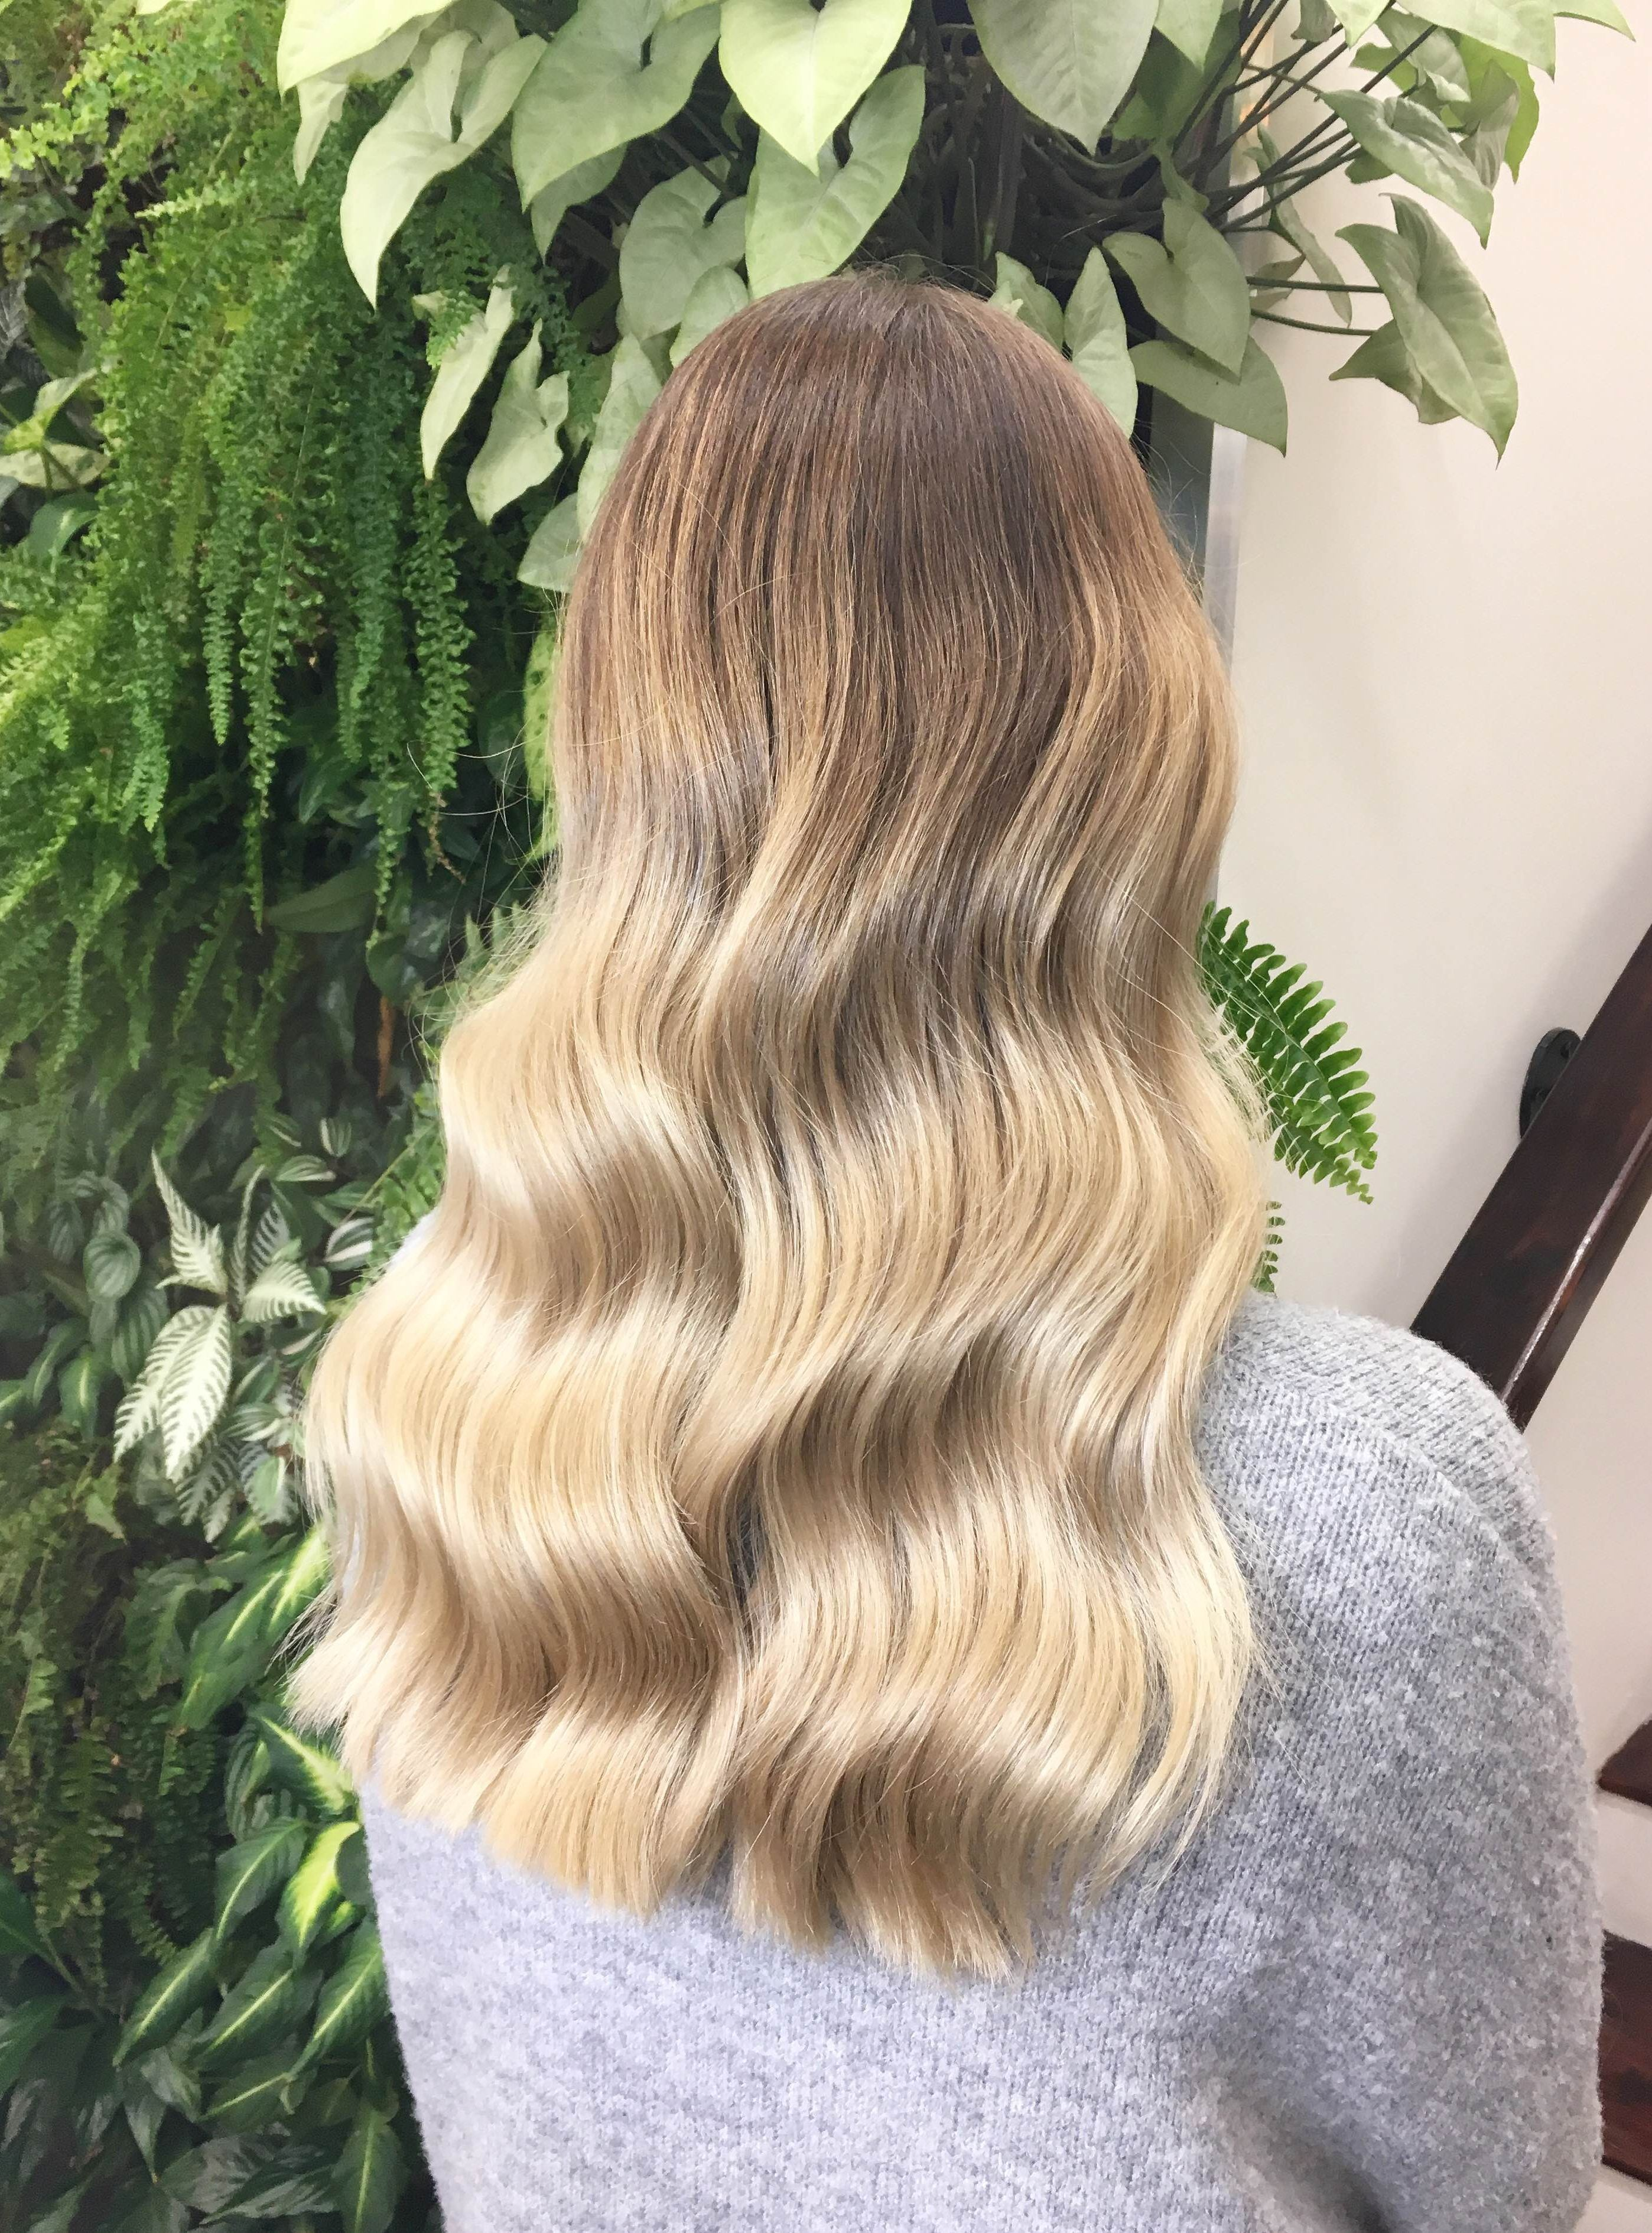 The Vertical Pull Down Is The Easiest Hair Trick You Ll Learn